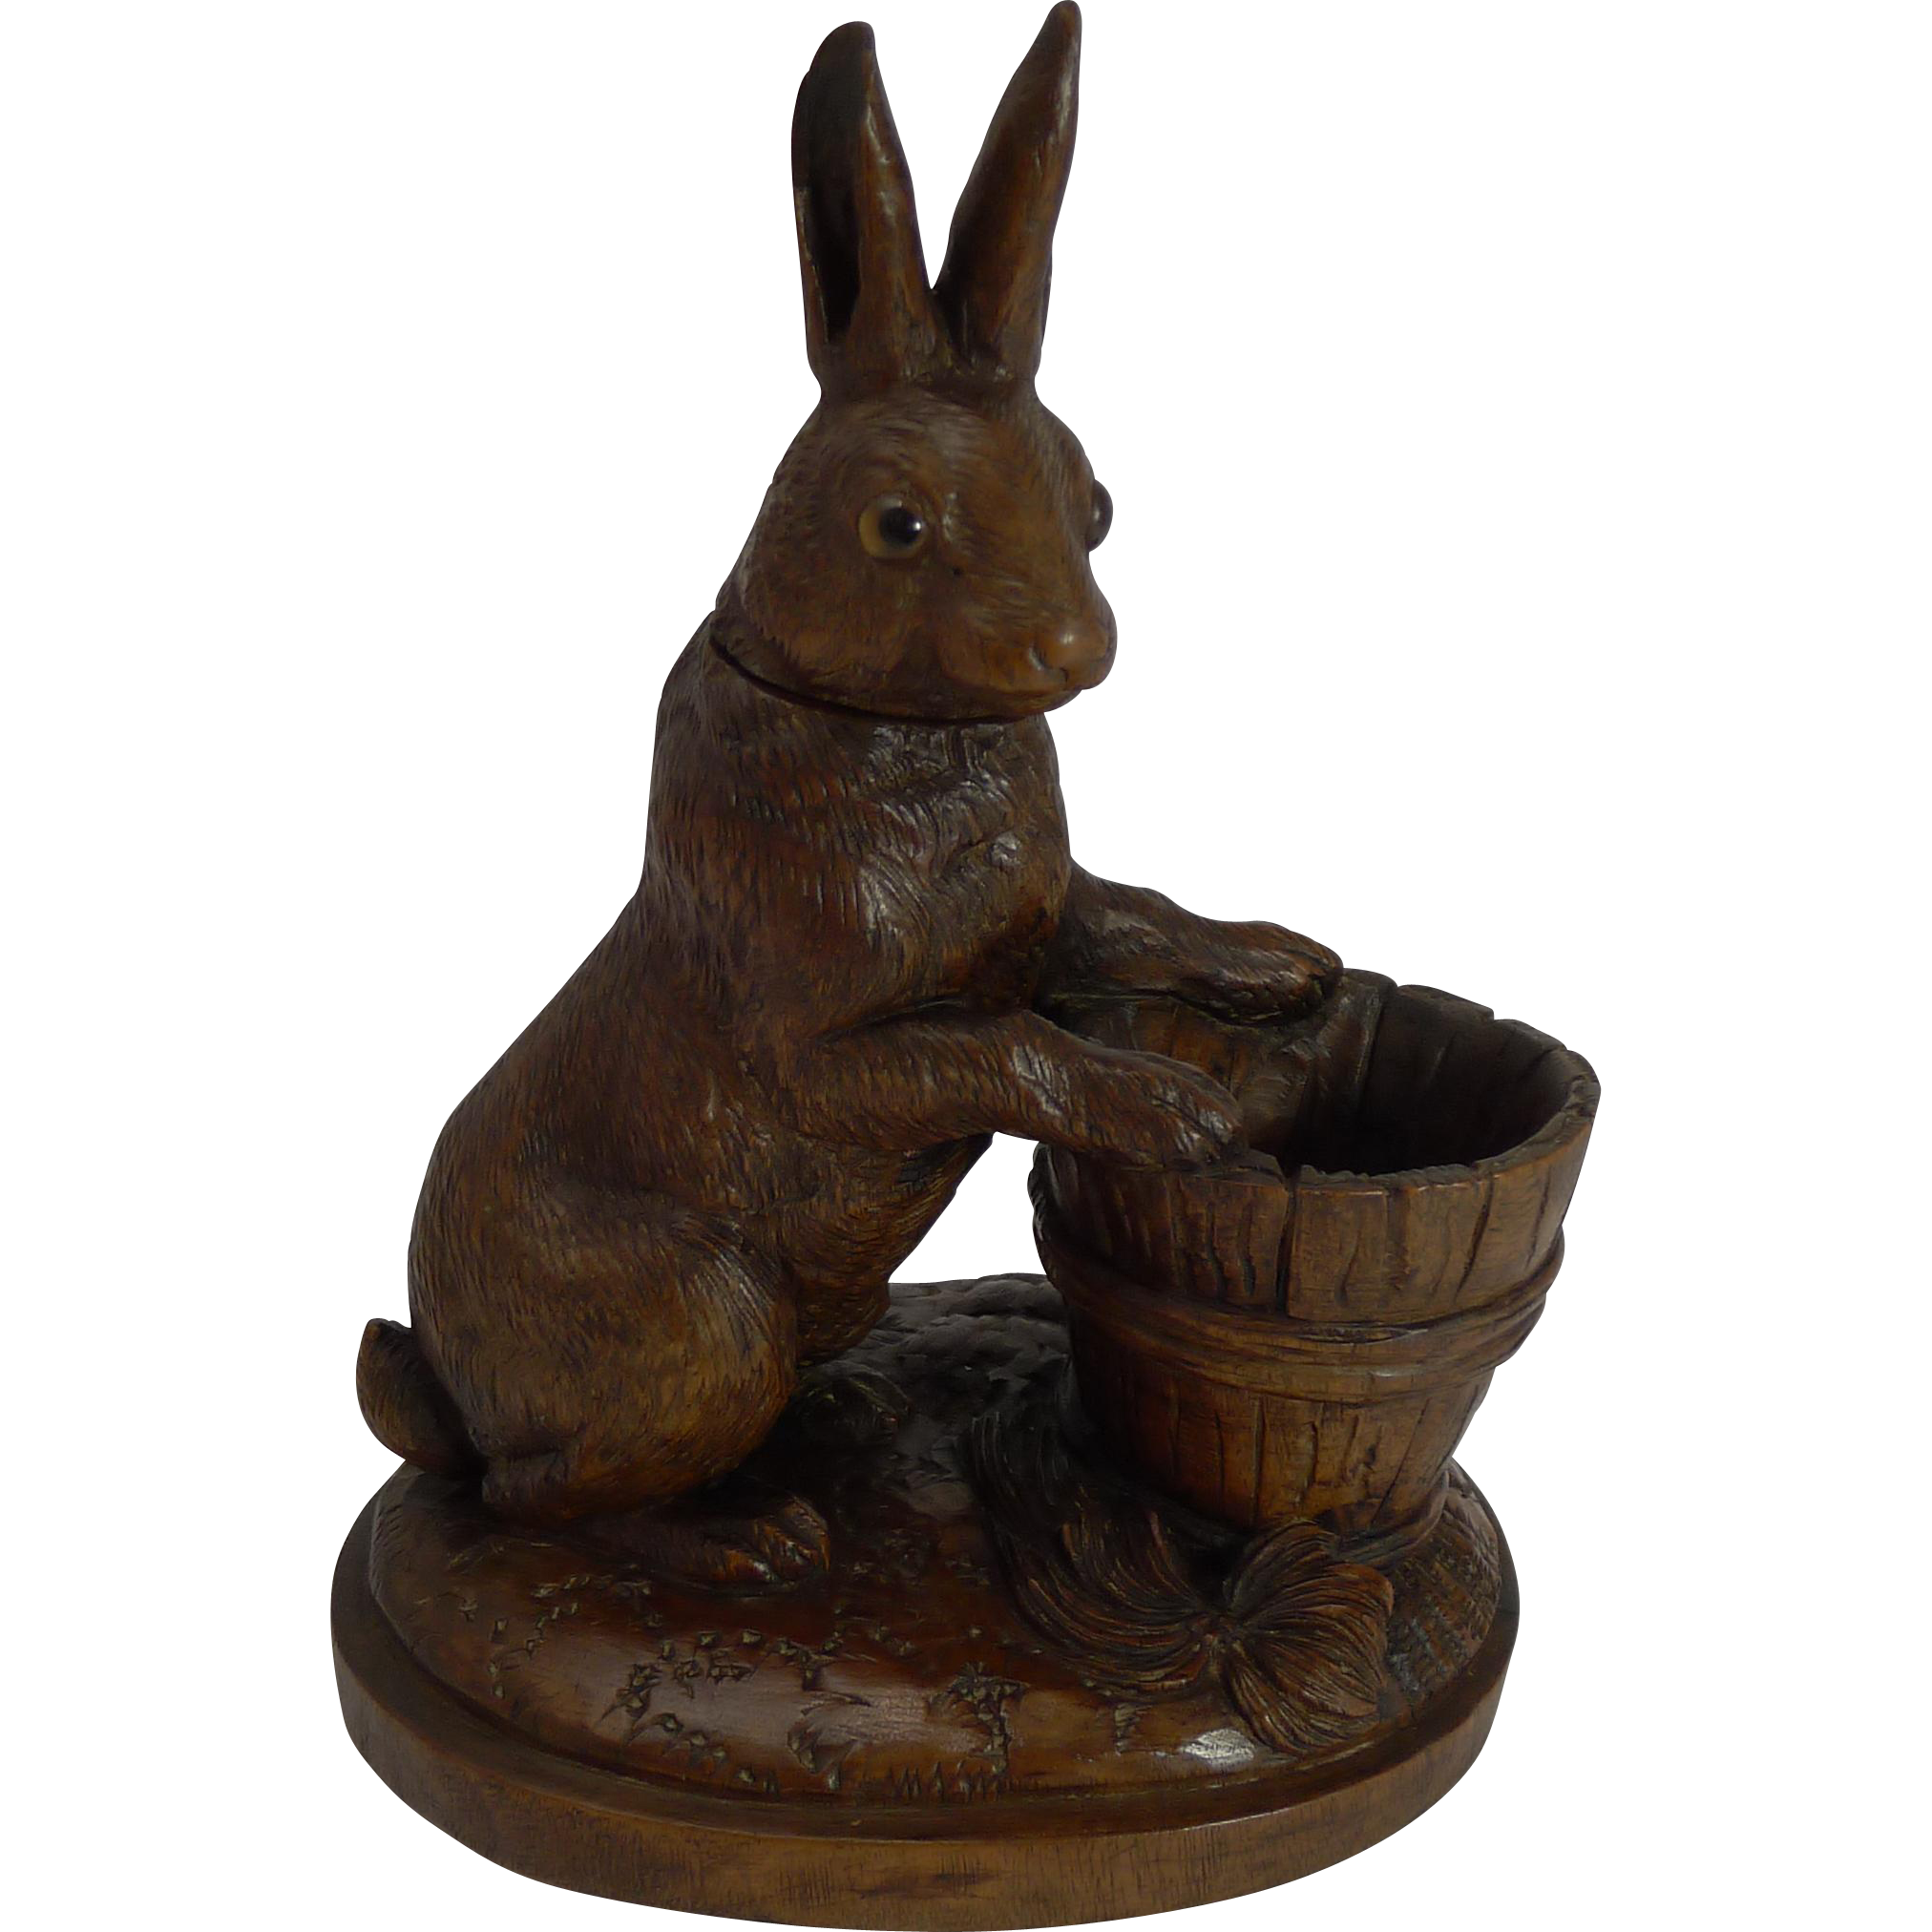 Rare and Adorable Carved Black Forest Figural Inkwell - Rabbit or Hare c.1900